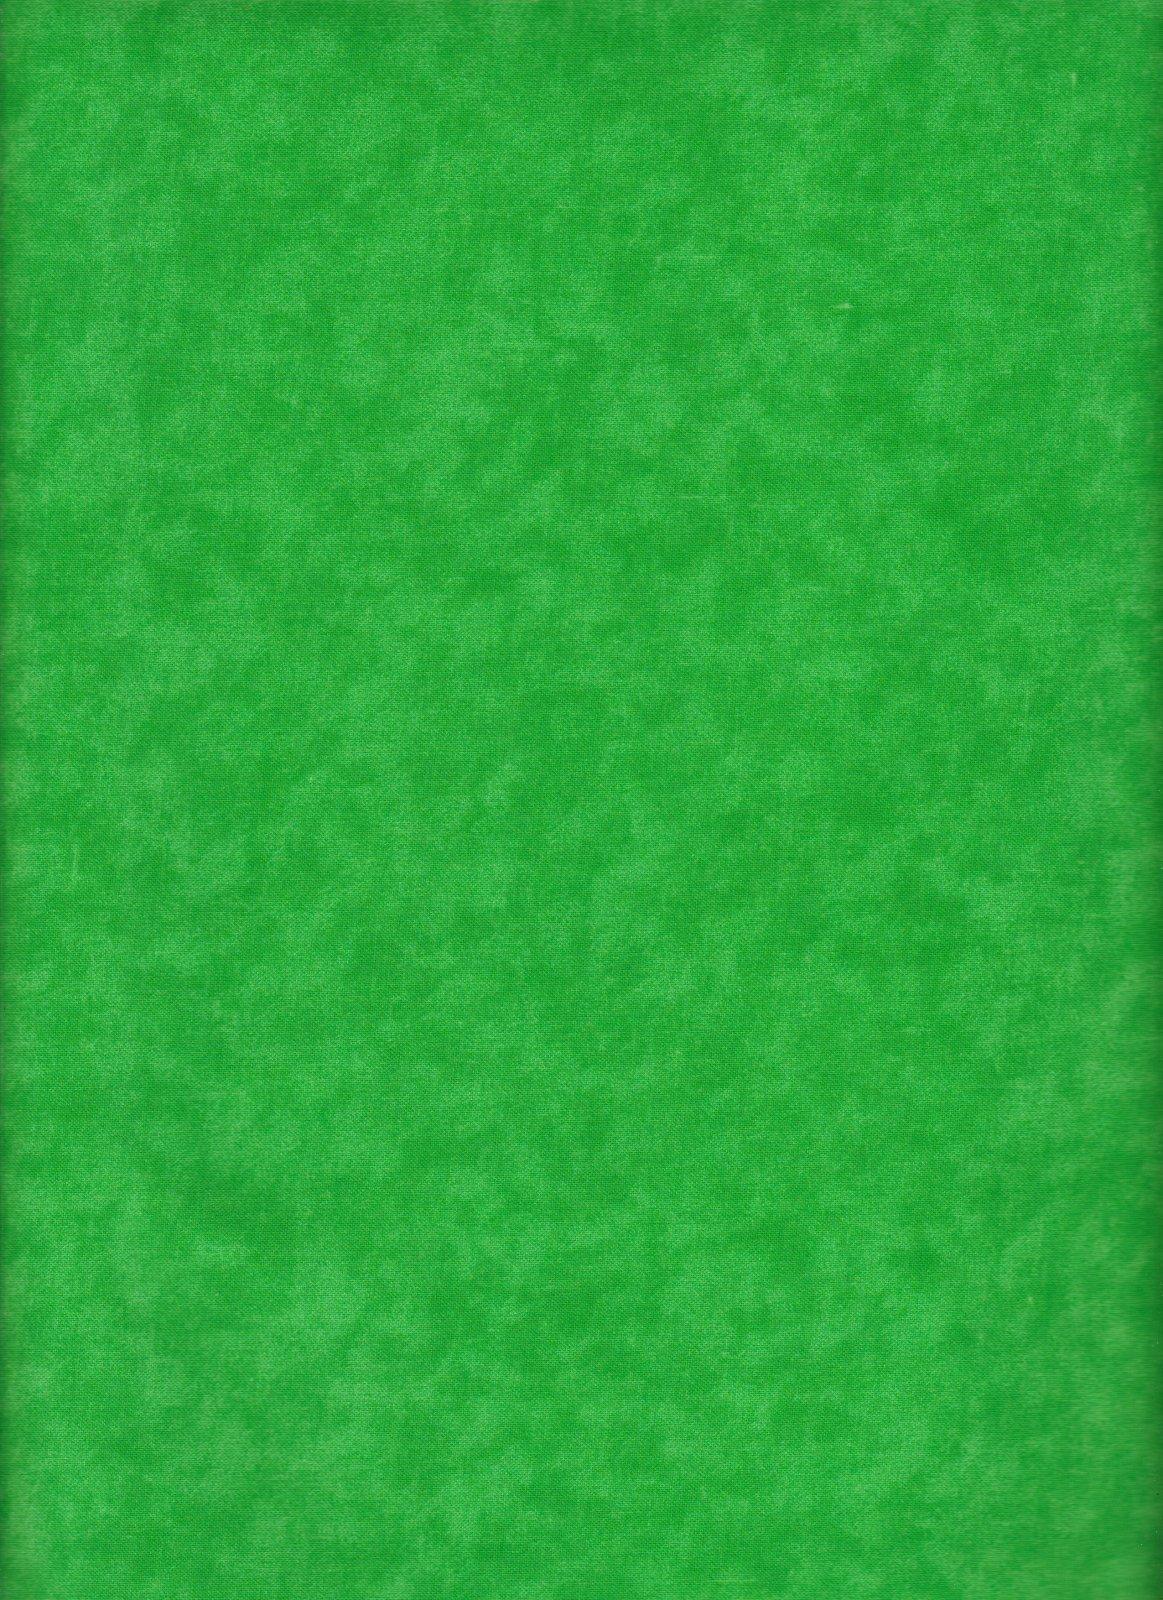 Quilt 108 Backing Suede Texture 44395-608 Lime